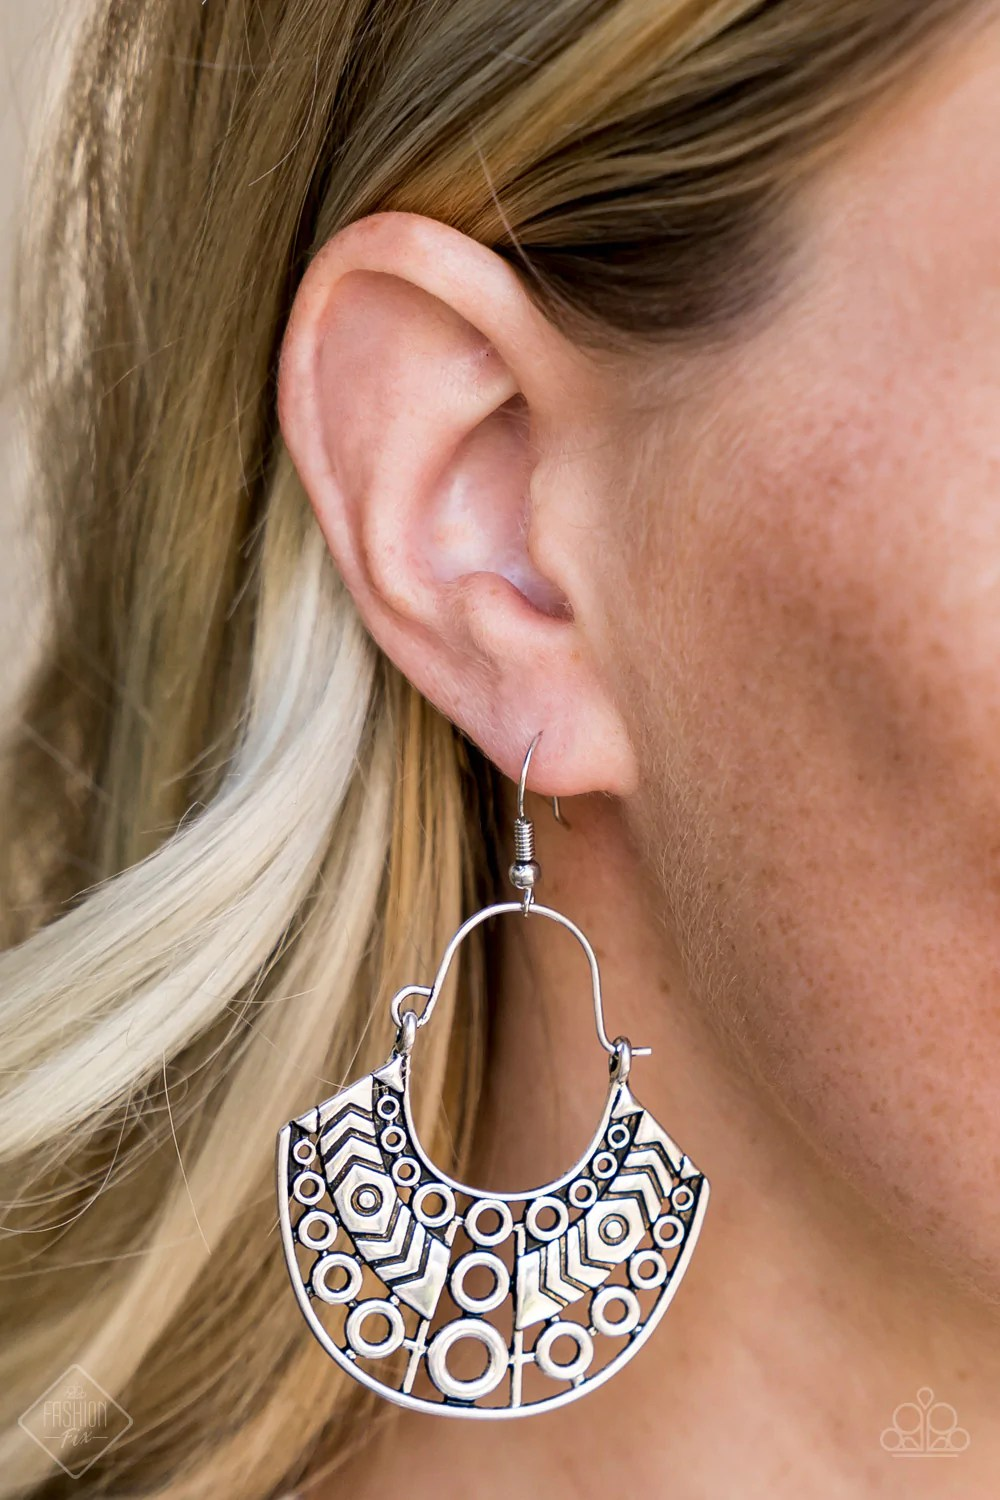 Paparazzi Jewelry Reviews 2018 : paparazzi, jewelry, reviews, Sunset, Sightings, Complete, Trend, Blend, November, Fashion, Bedazzle, Pretty, Mobile, Boutique